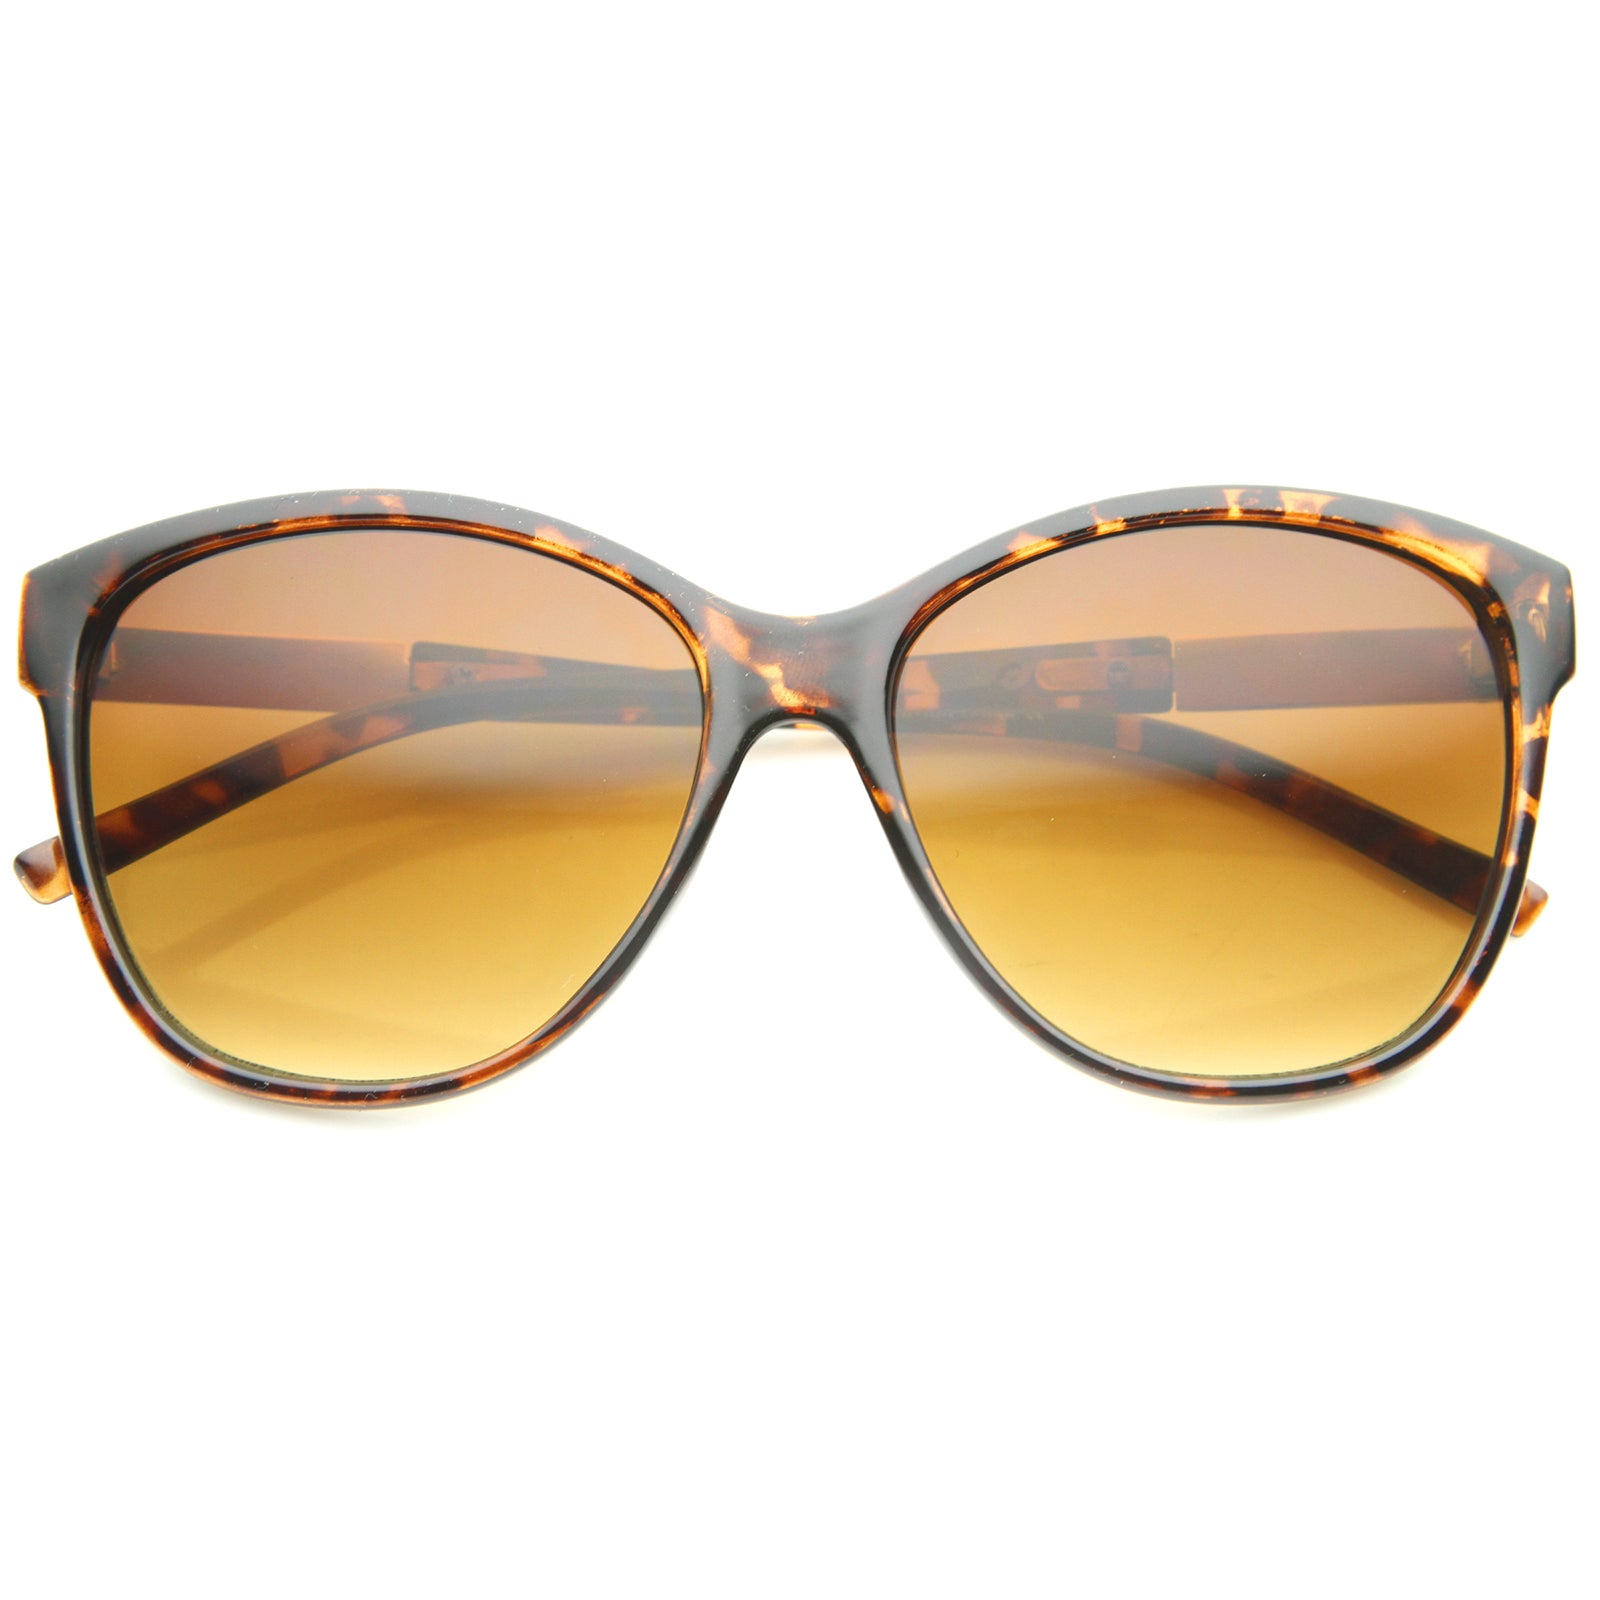 Women's Glam Fashion Metal Temple Oversize Cat Eye Sunglasses 59mm - sunglass.la - 9